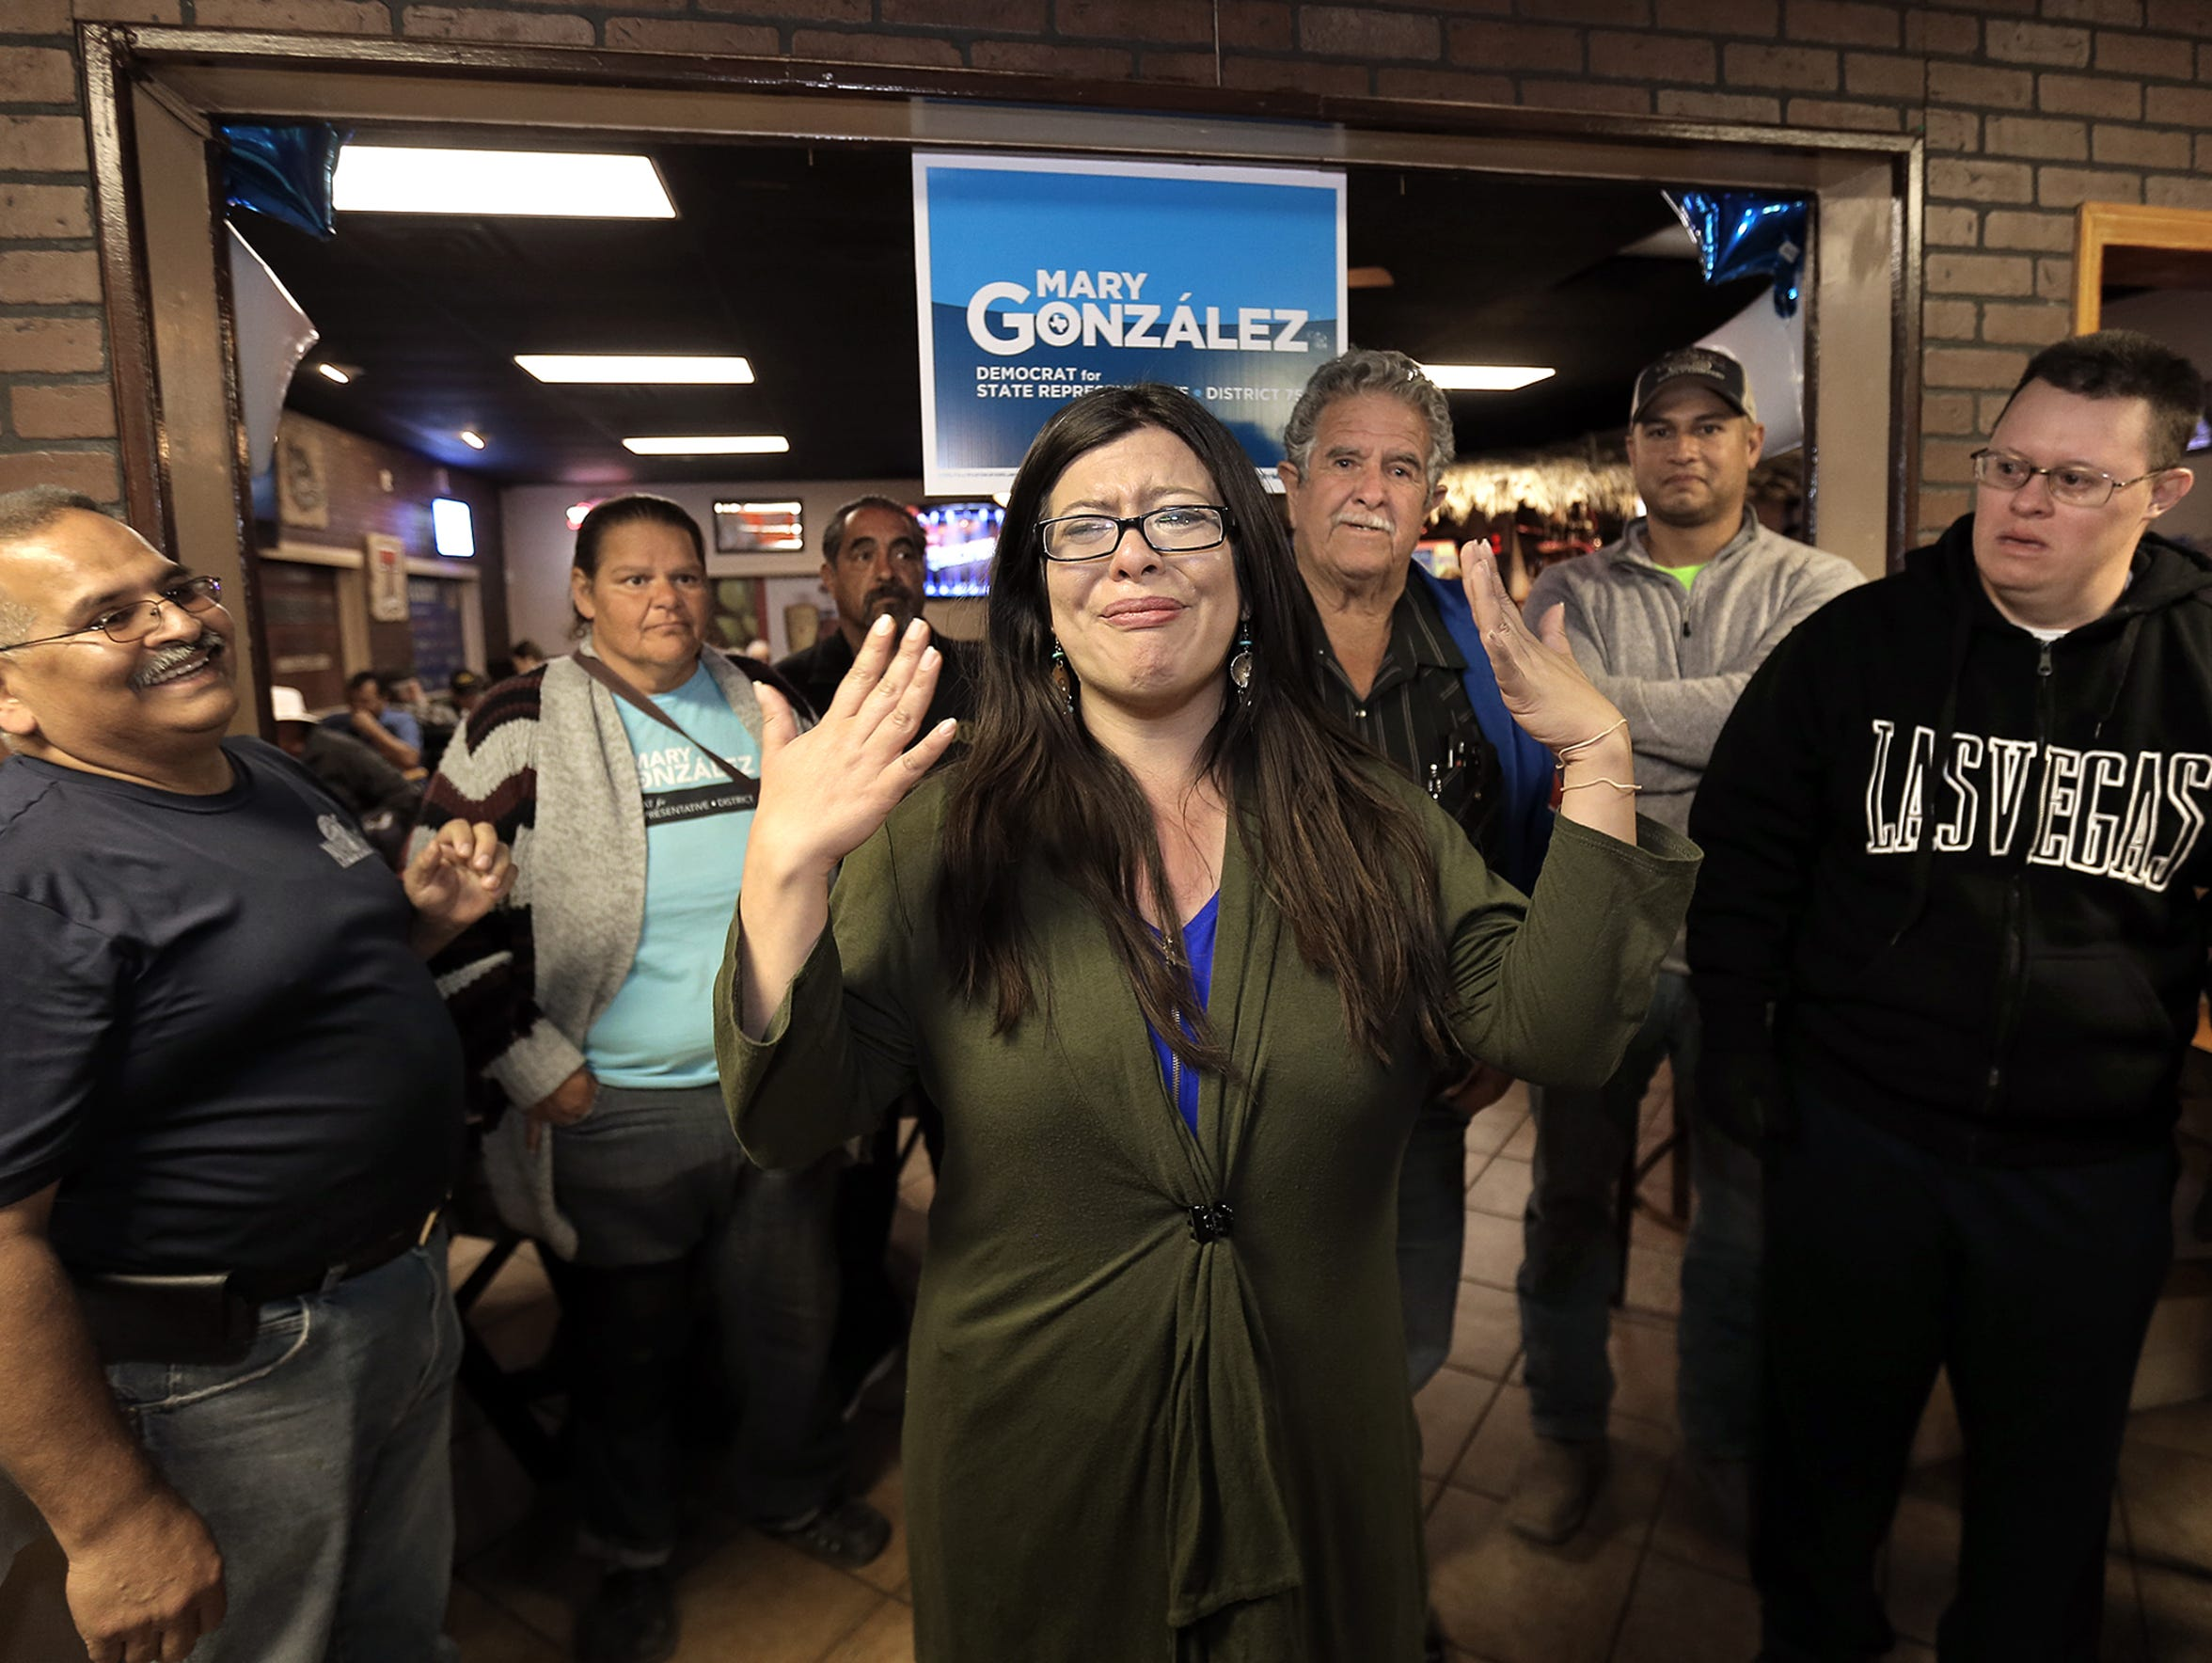 State Rep. Mary Gonzalez was overcome with emotion